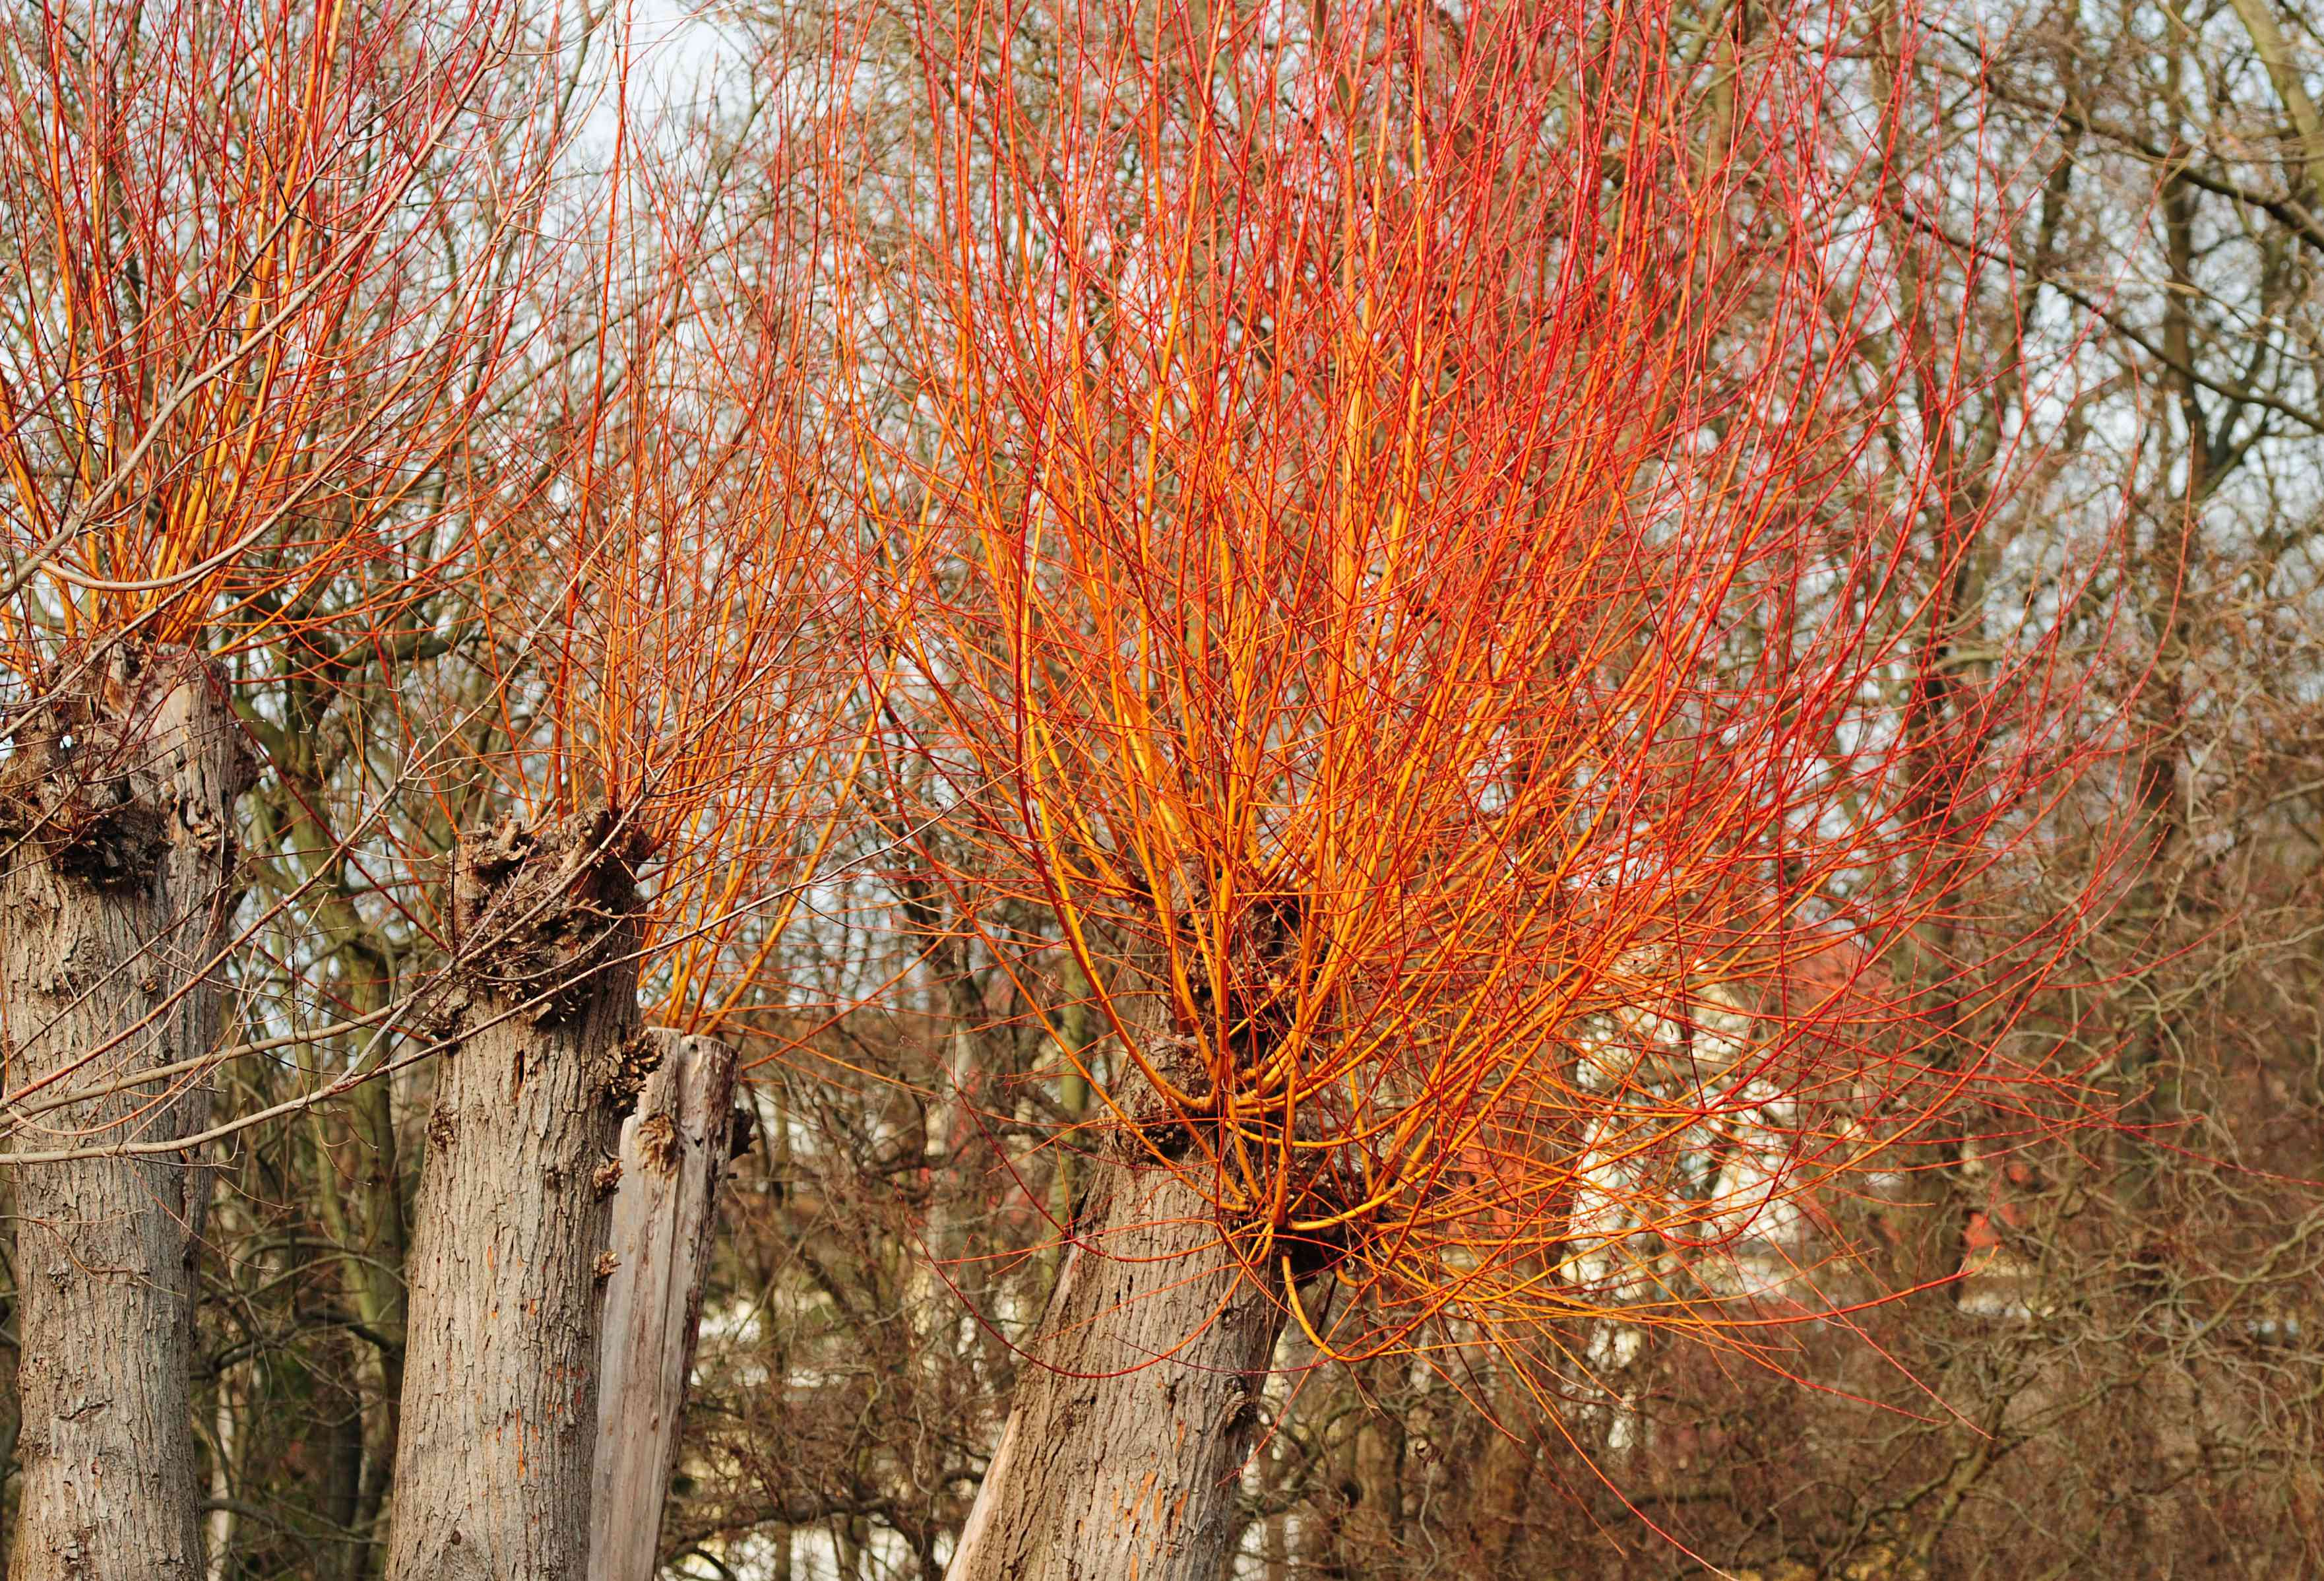 Red twig dogwood with think trunks and bare orange branches